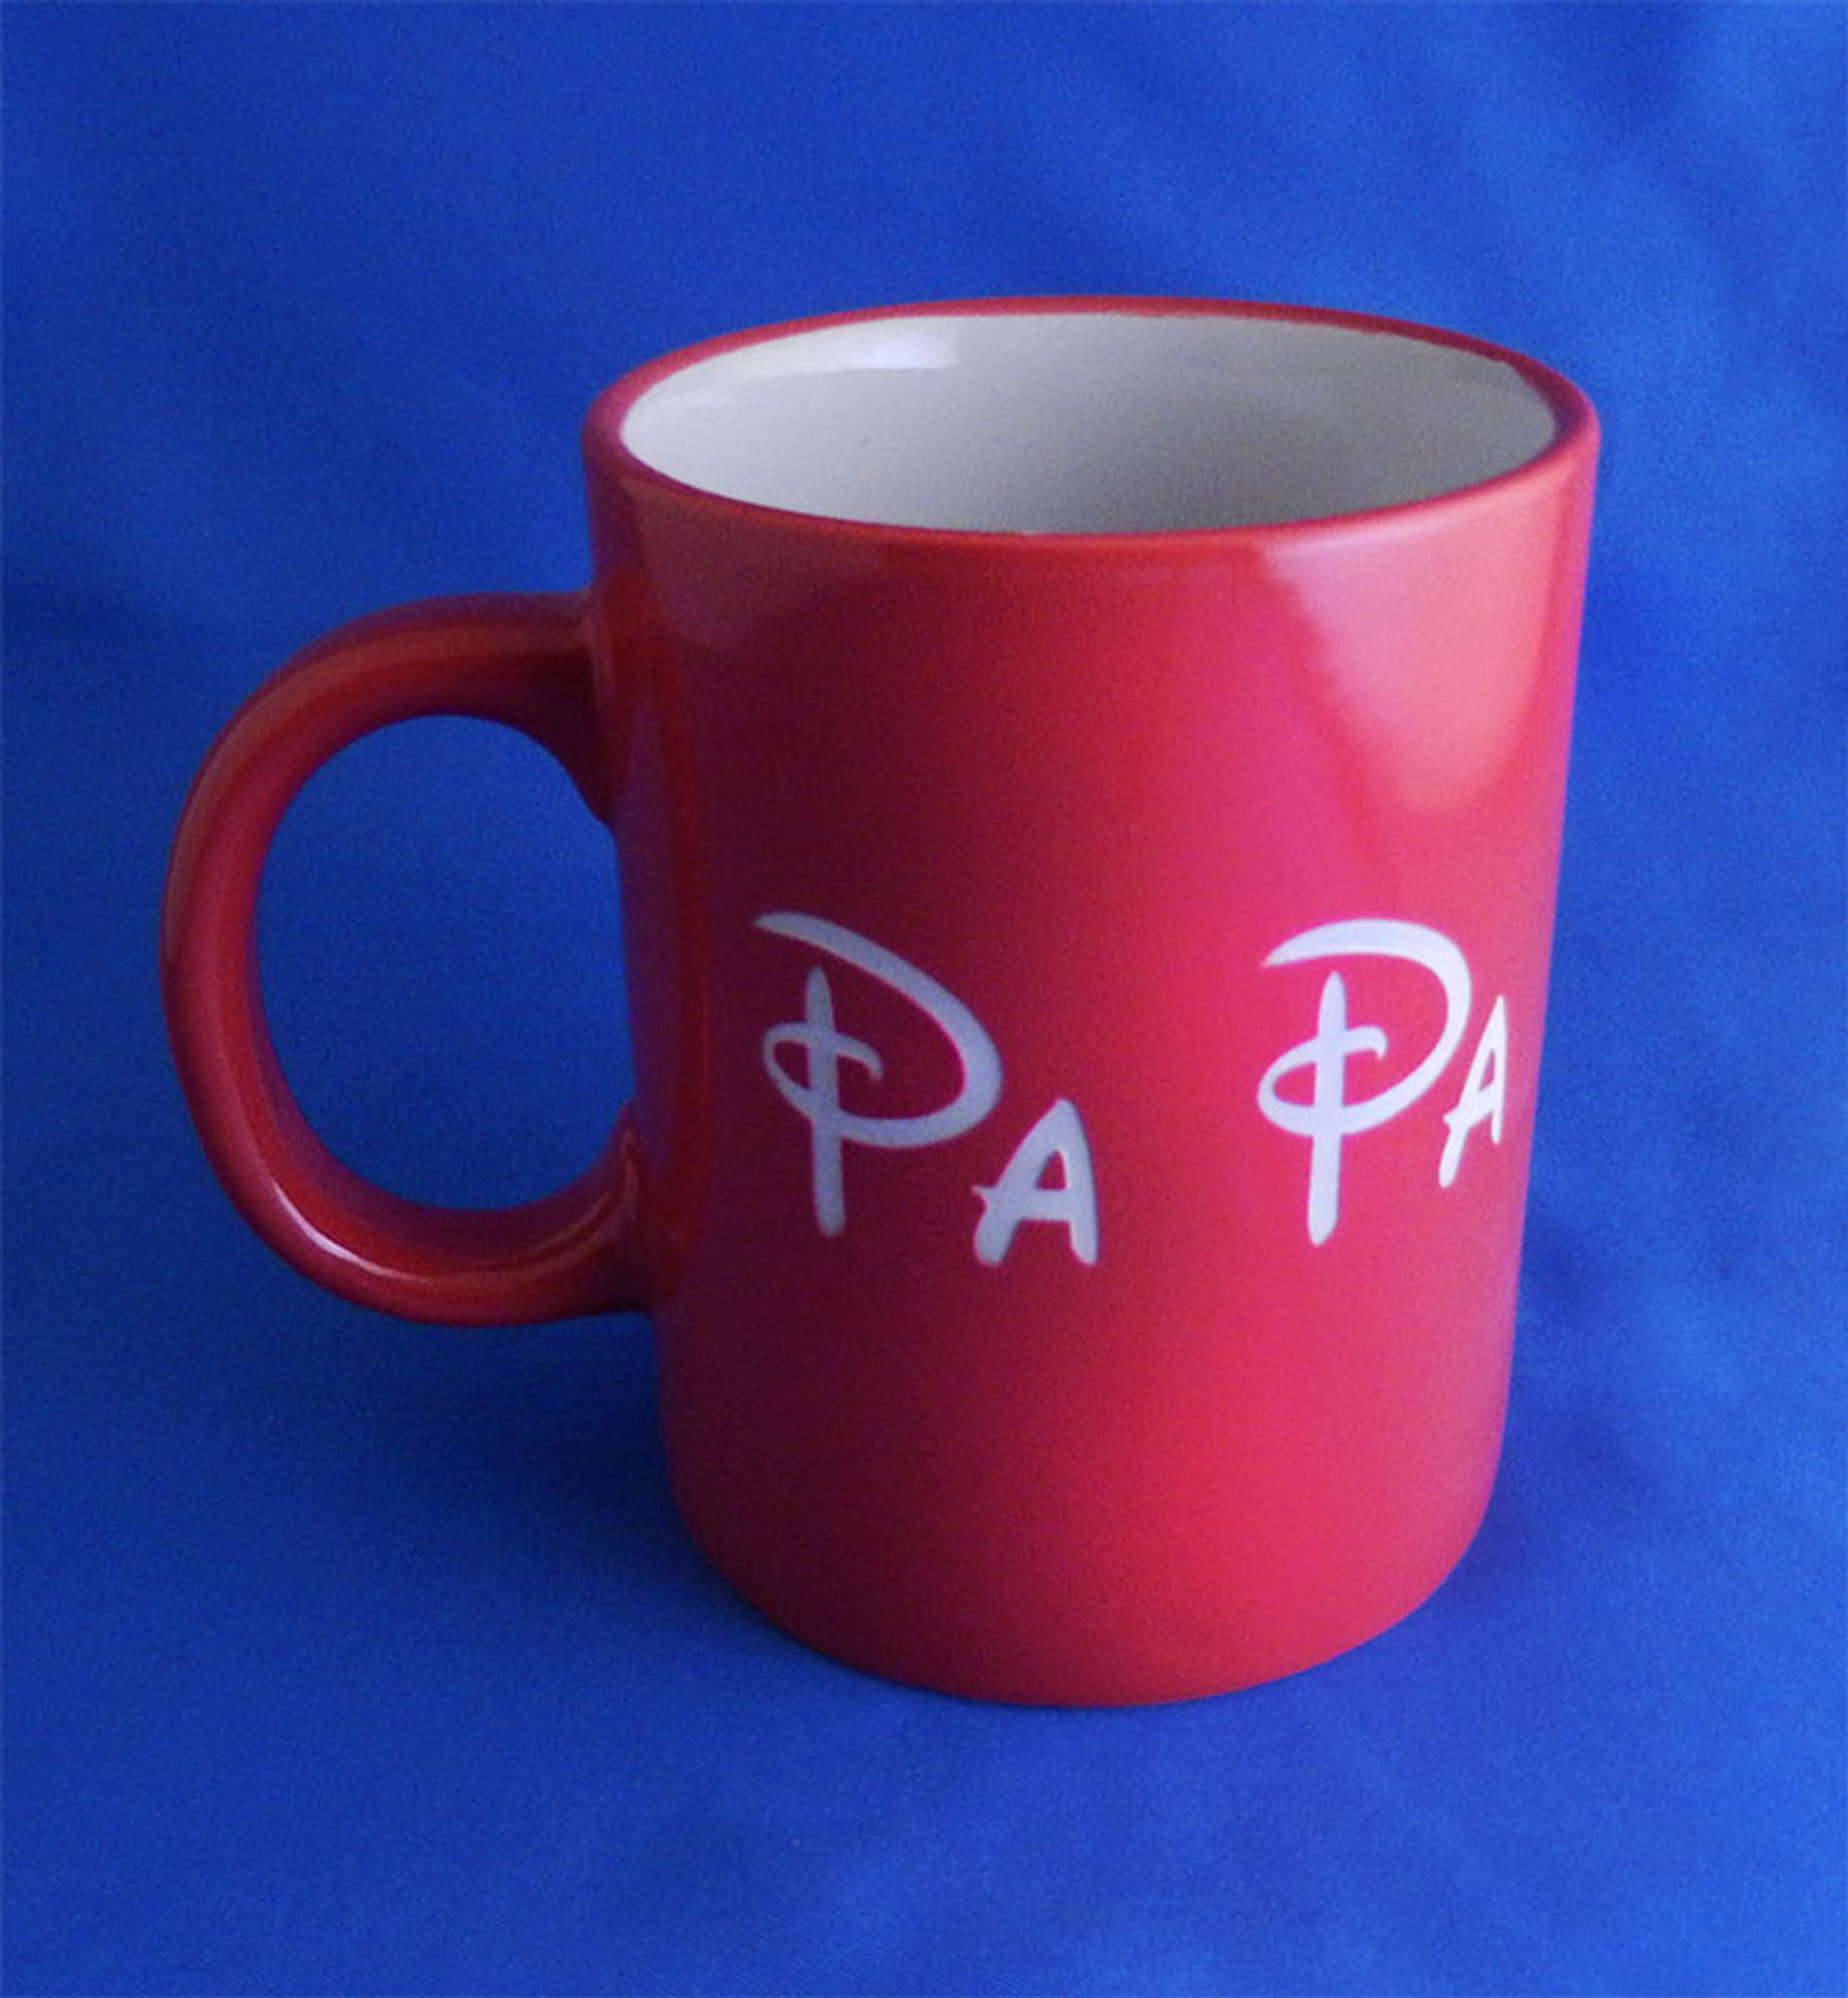 Personalized Red Ceramic Standard Coffee Mug